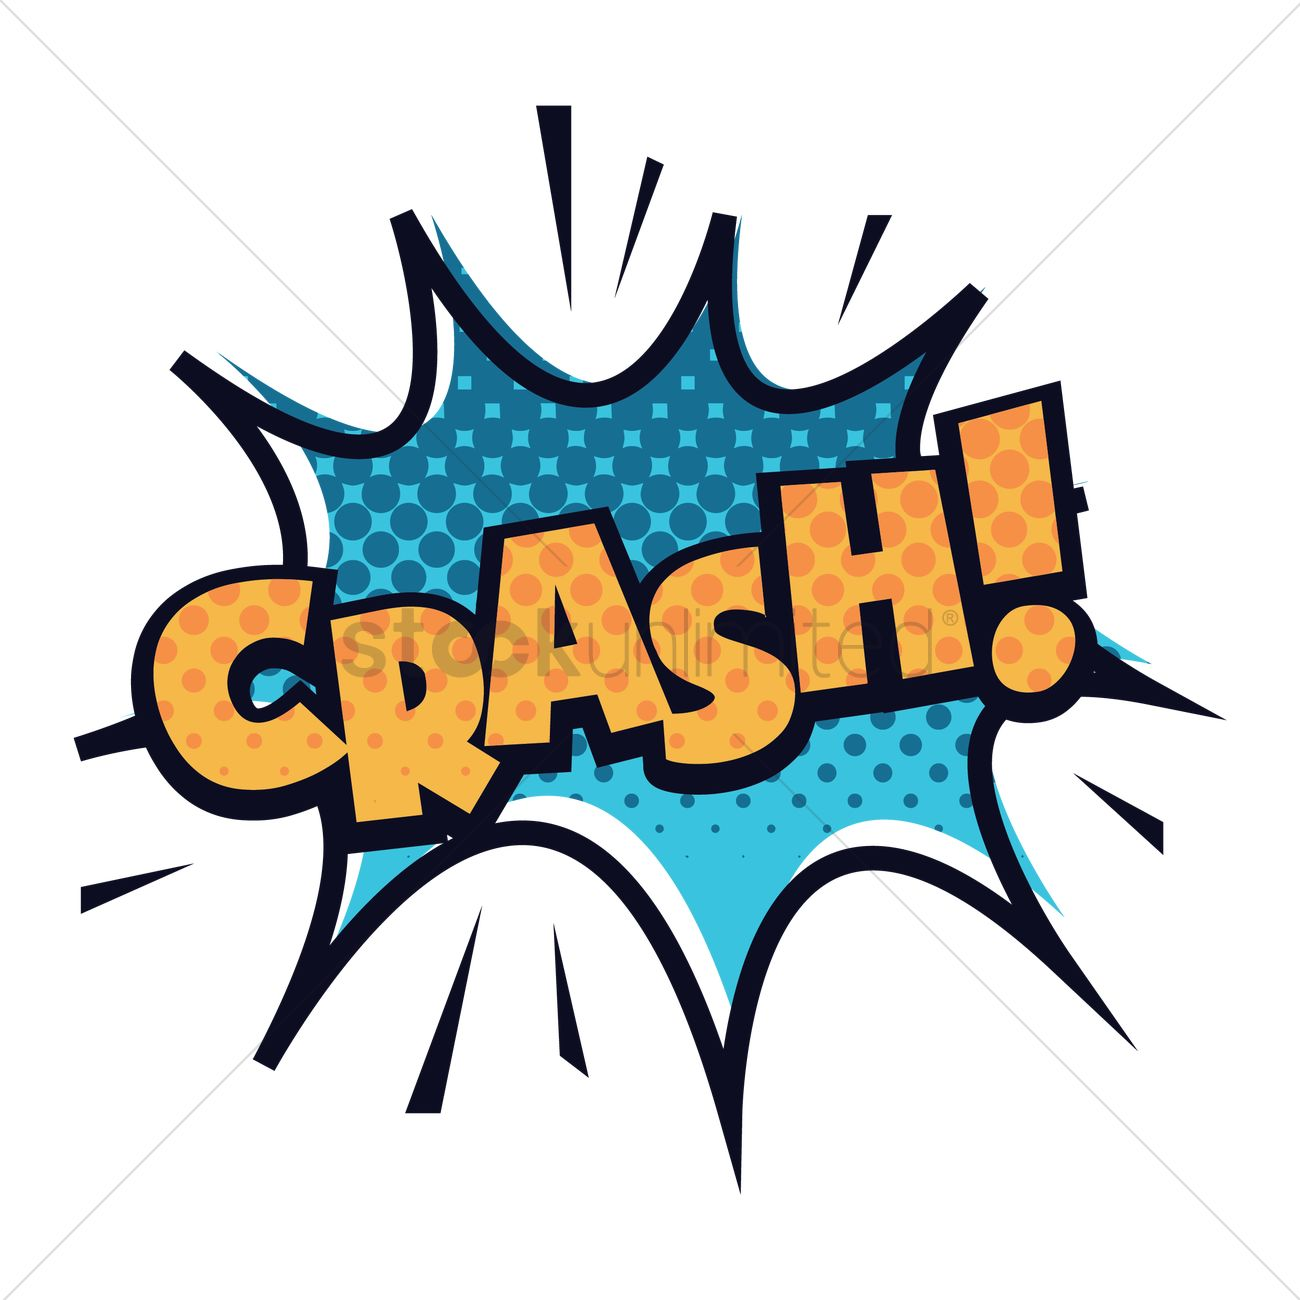 Crash text with comic effect Vector Image.